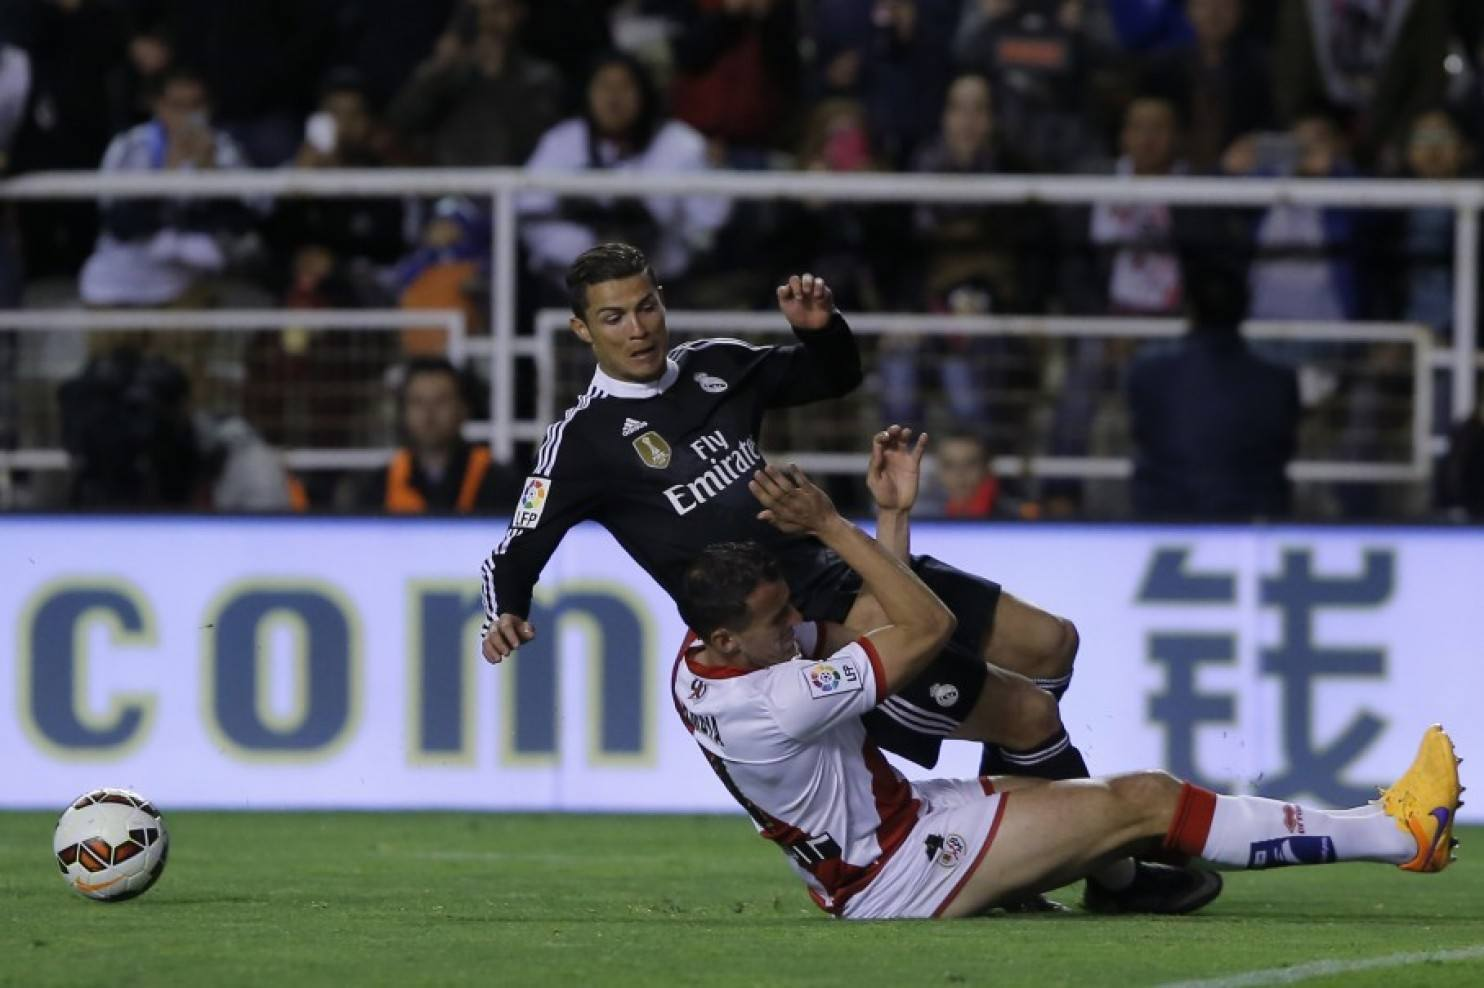 cristiano ronaldo man take down from eibar la liga images 2015